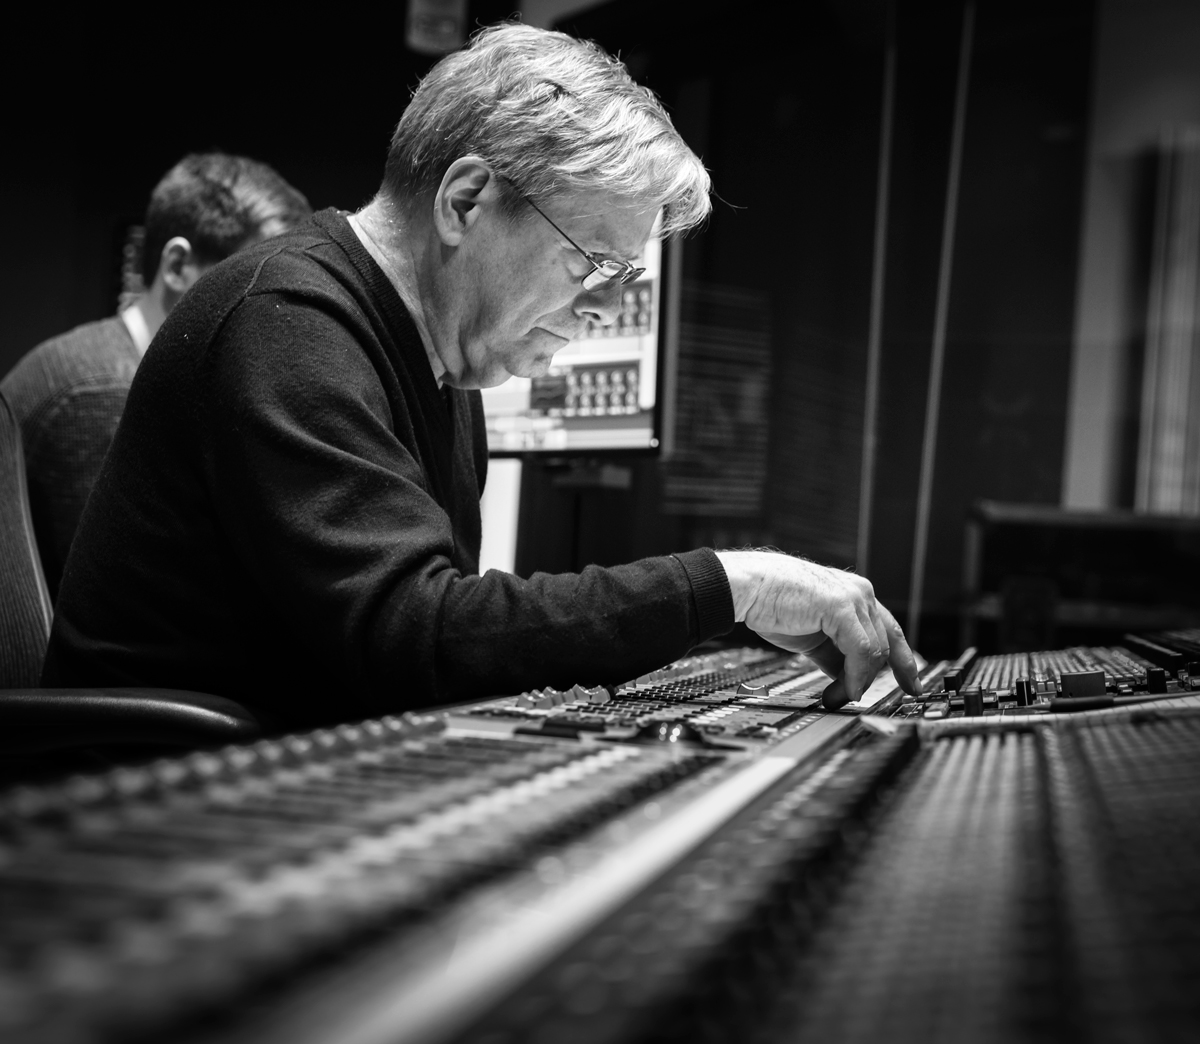 George Massenburg Music Production and Engineering masterclass 2017 World renown engineer and producer George Massenburg at the console during a recording session of a Berklee student ensemble.